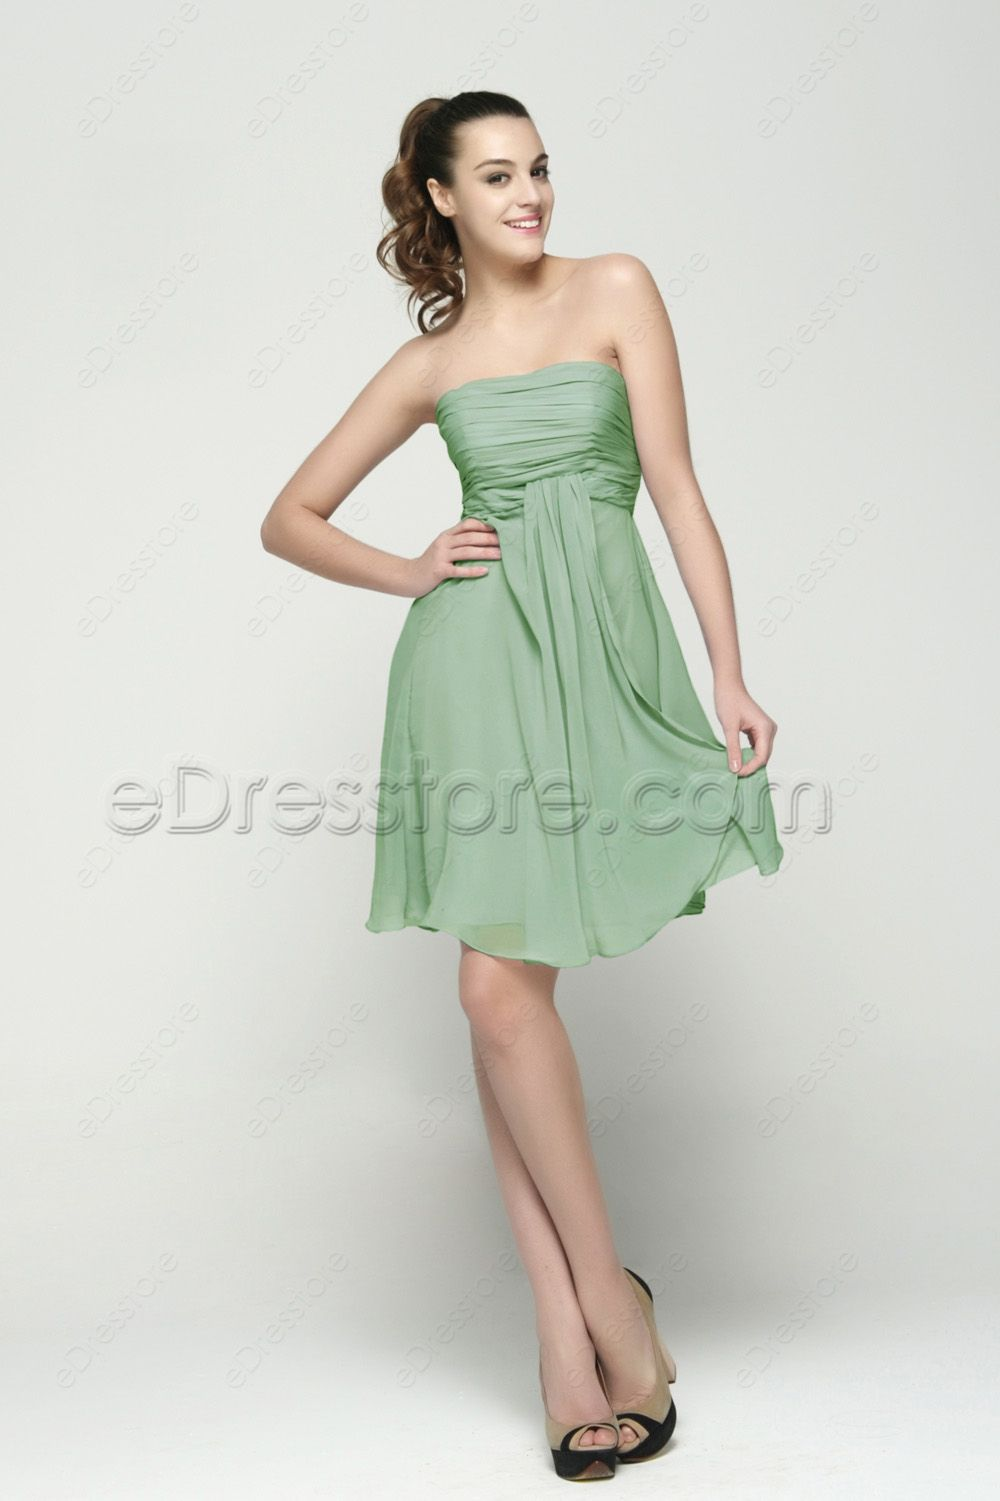 Strapless sage green summer bridesmaid dresses knee length sage green bridesmaid dresses maternity bridesmaid dresses short bridesmaid dresses summer bridesmaid dresses ombrellifo Image collections